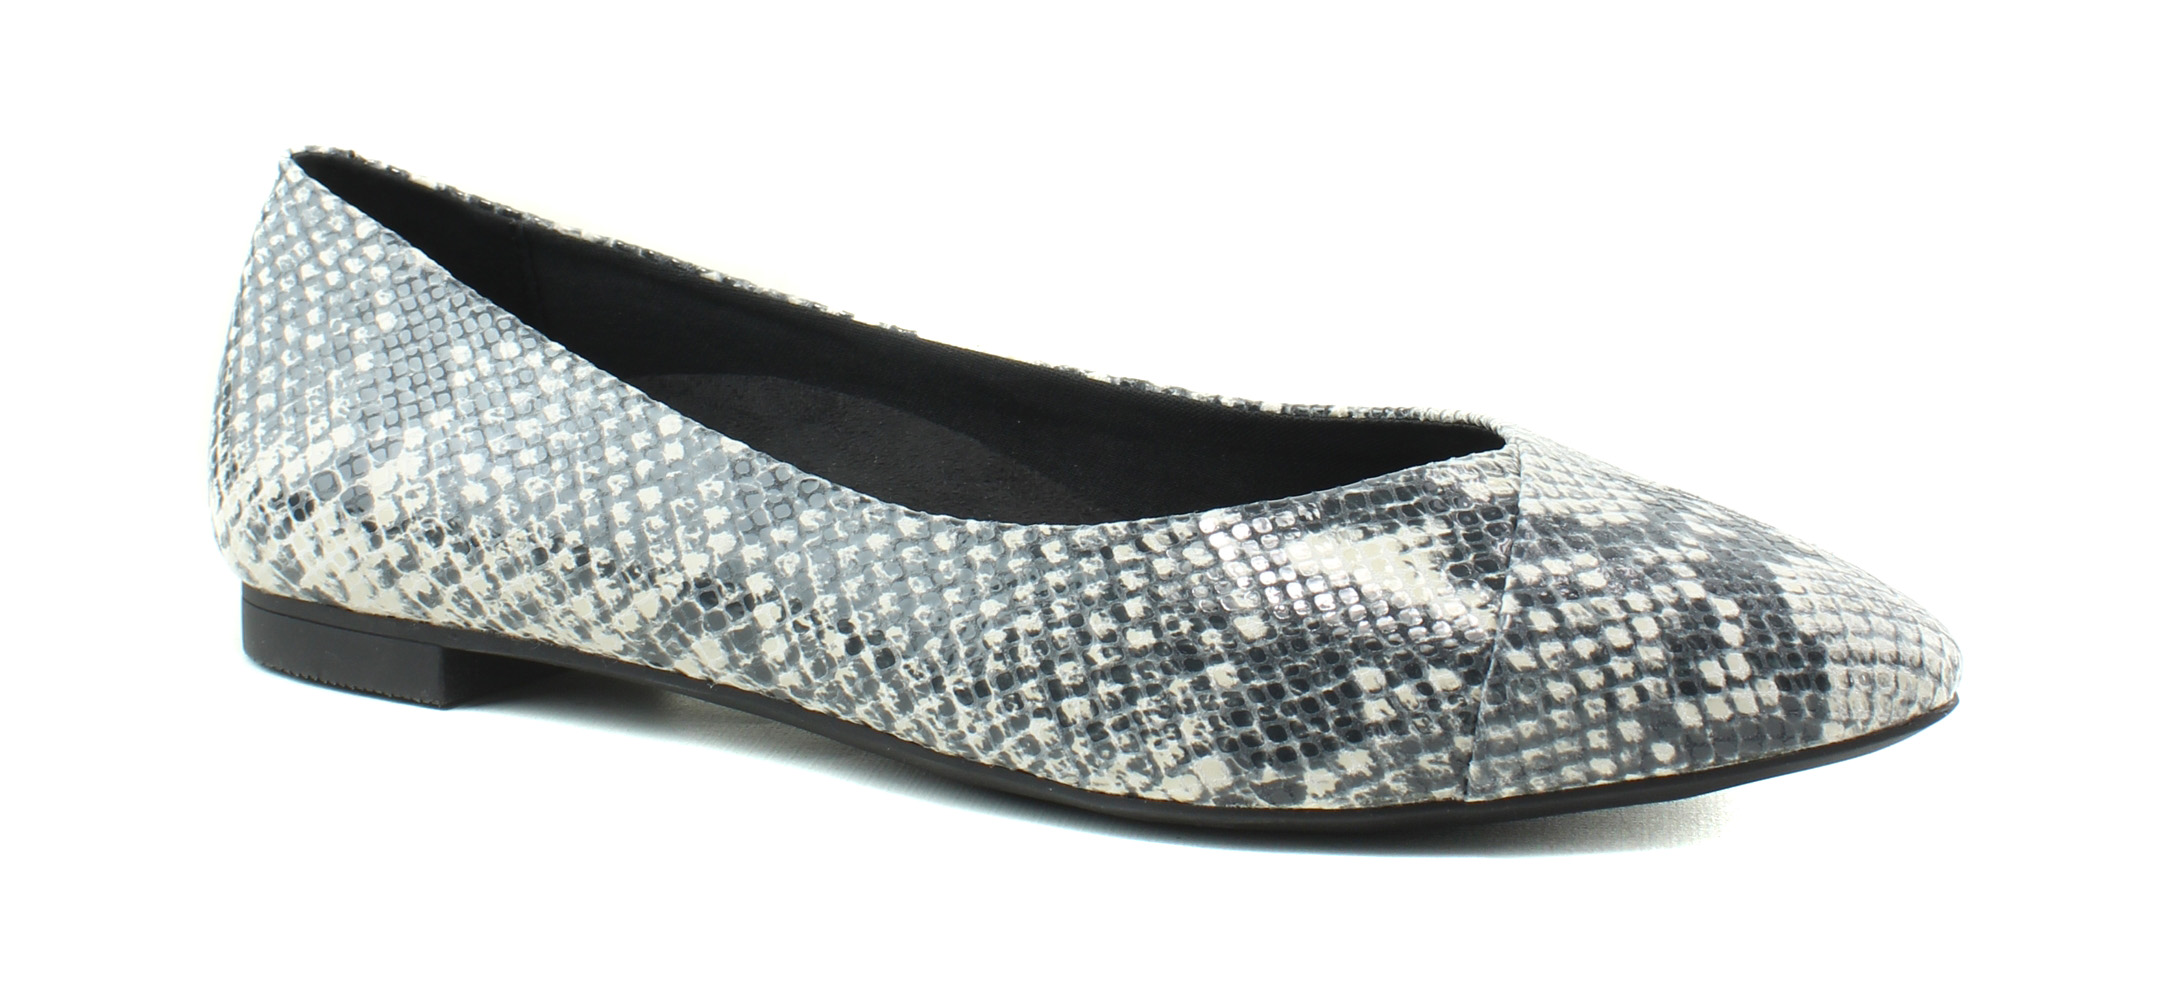 New Vionic Donna Caballo Natural Snake Ballet Flats Size 10